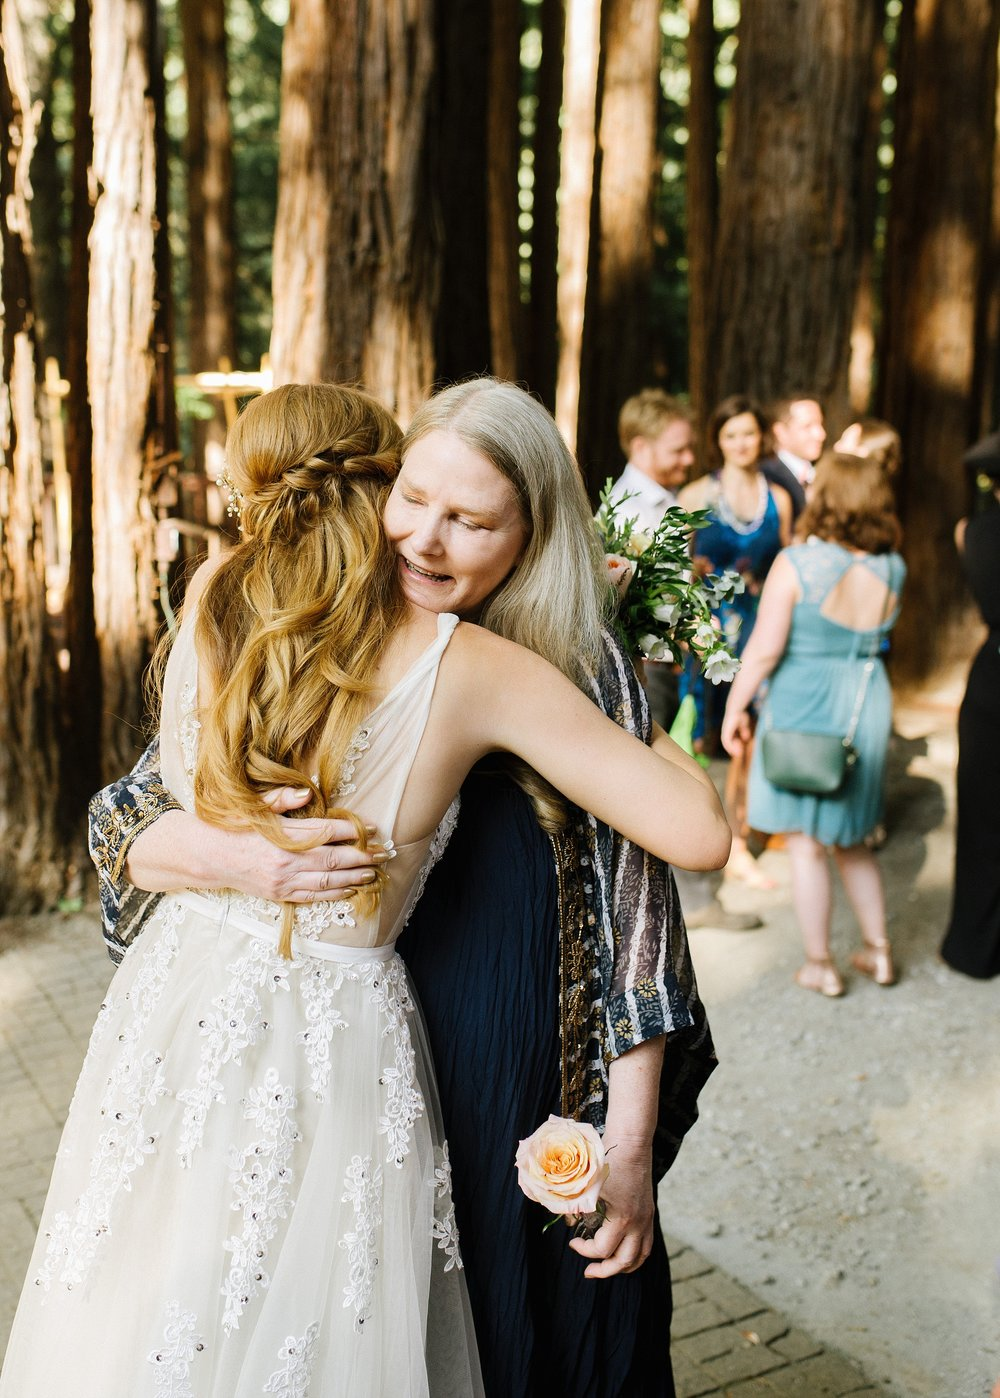 Amphitheatre-of-the-Redwoods-wedding-erikariley_chelsea-dier-photography_0024.jpg